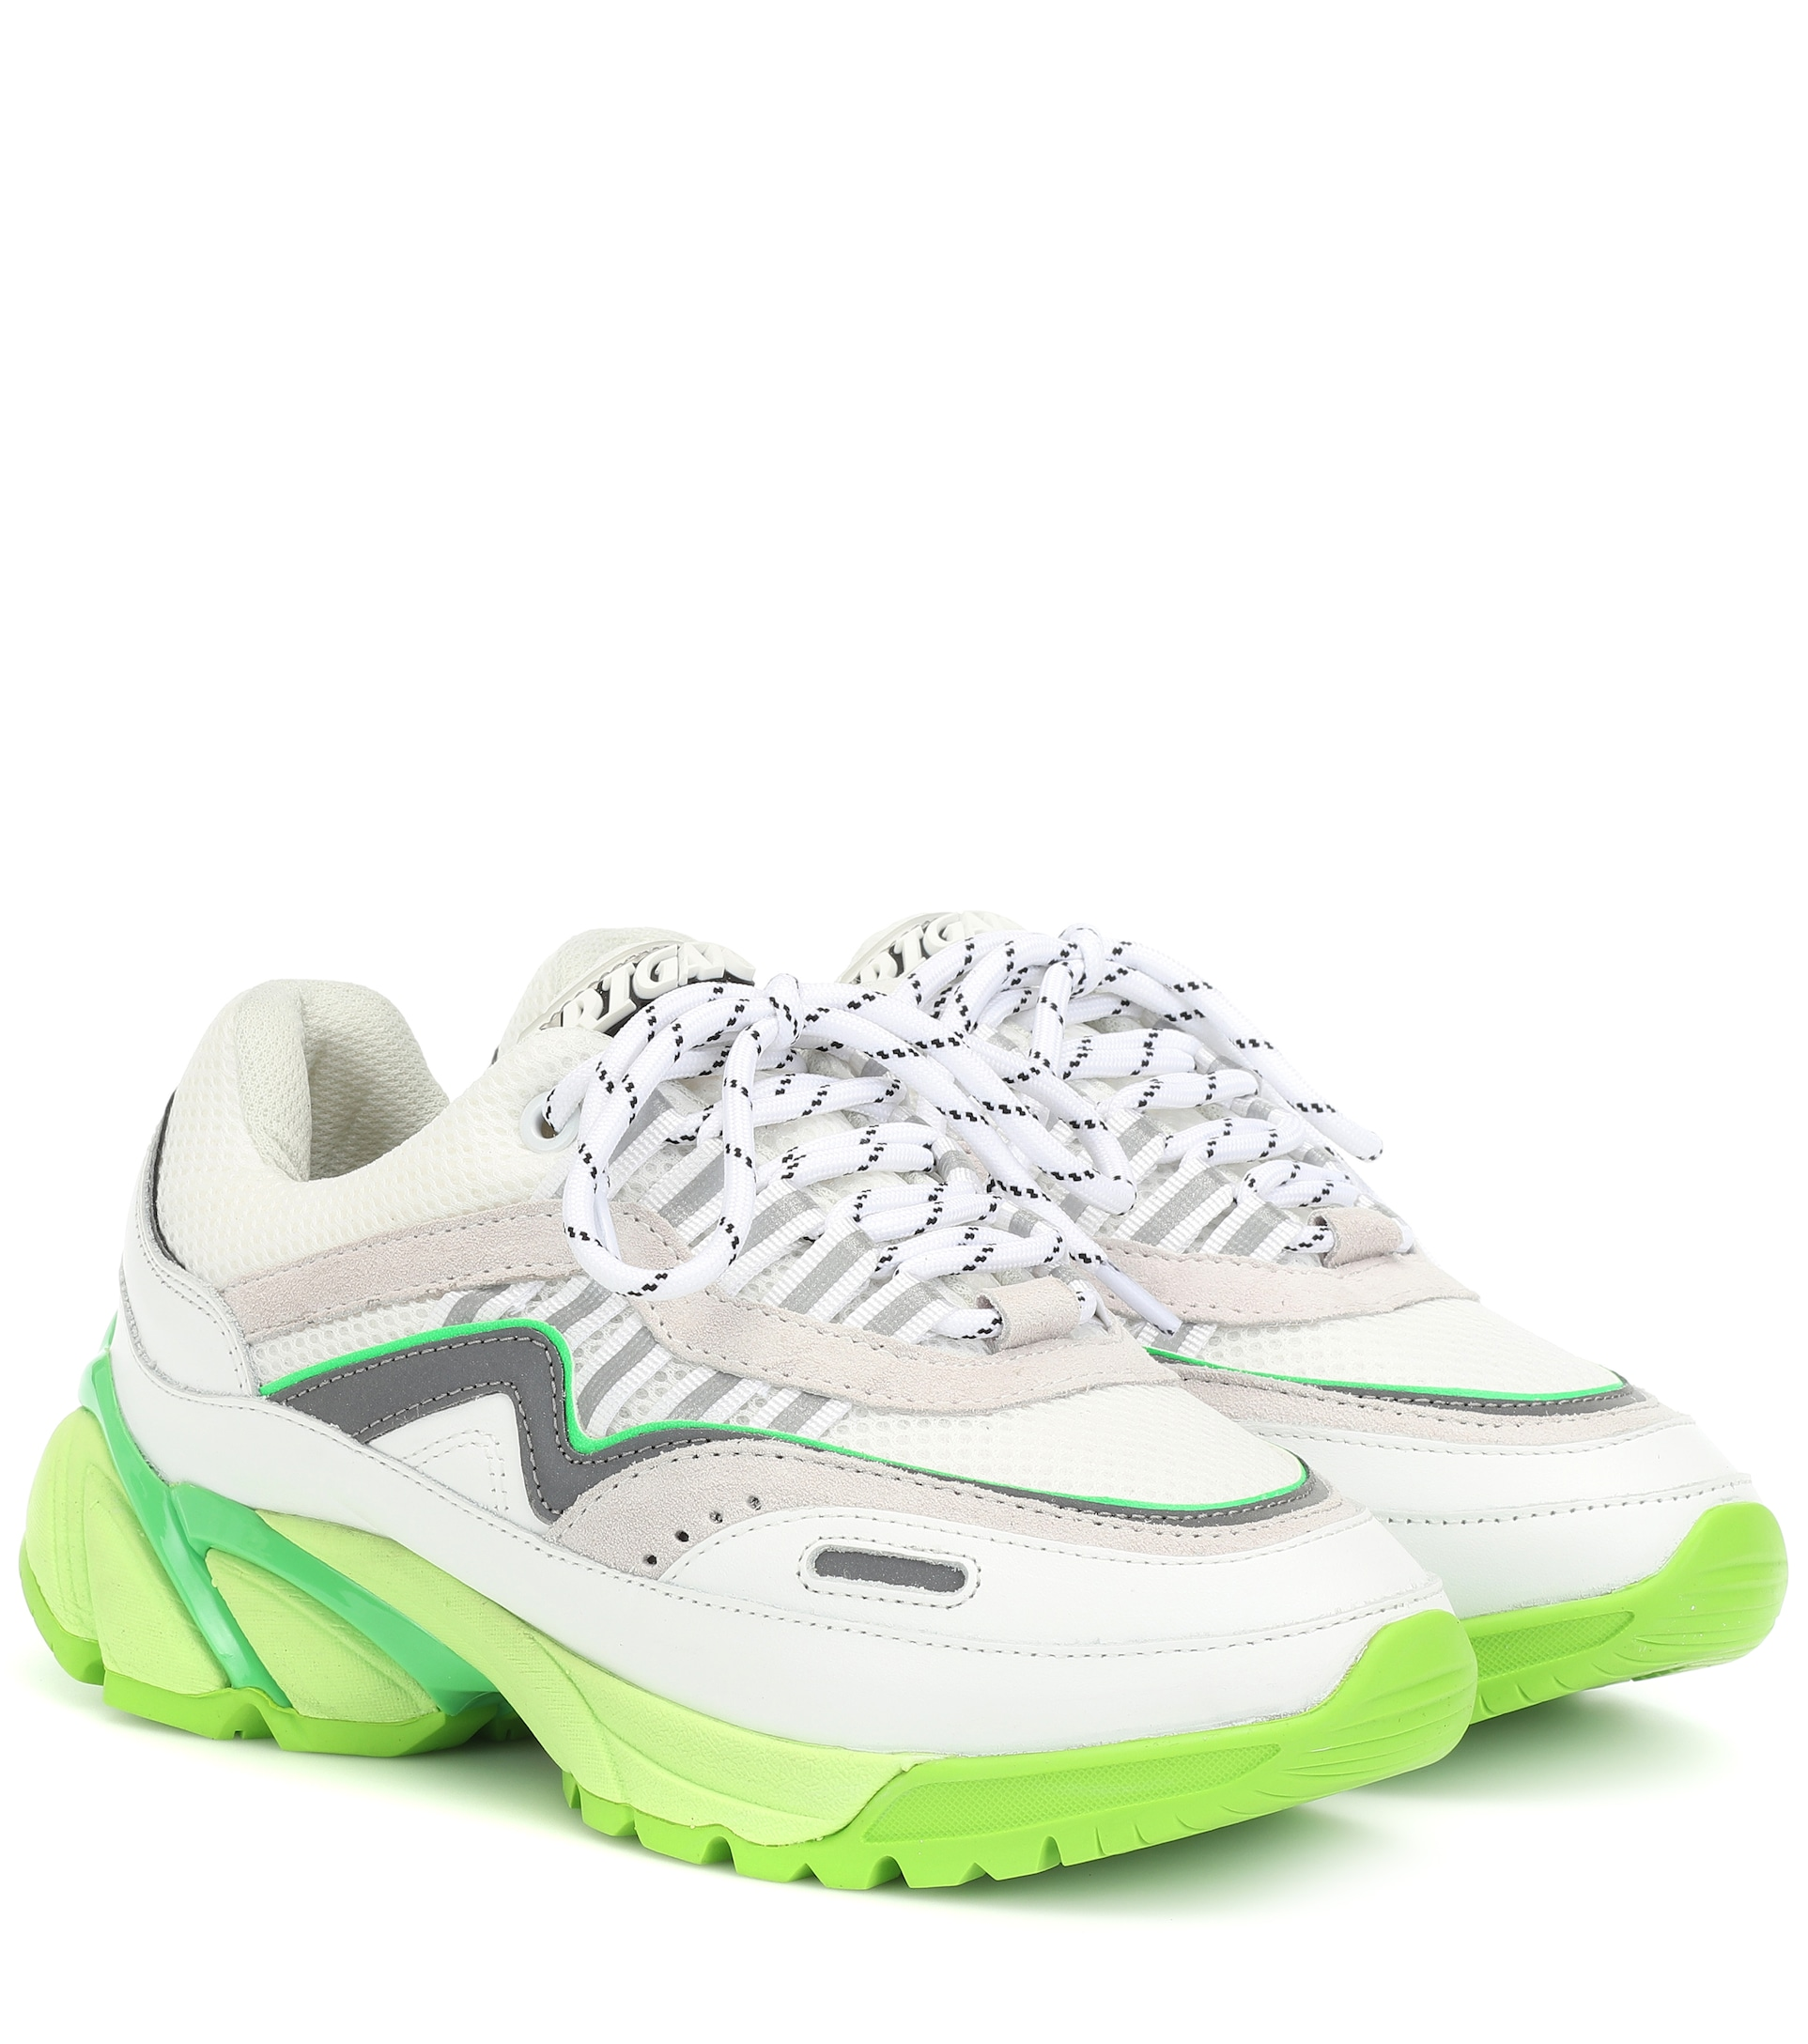 xel-arigato-exclusive-to-mytheresa-leather-and-mesh-sneakers-neon-green